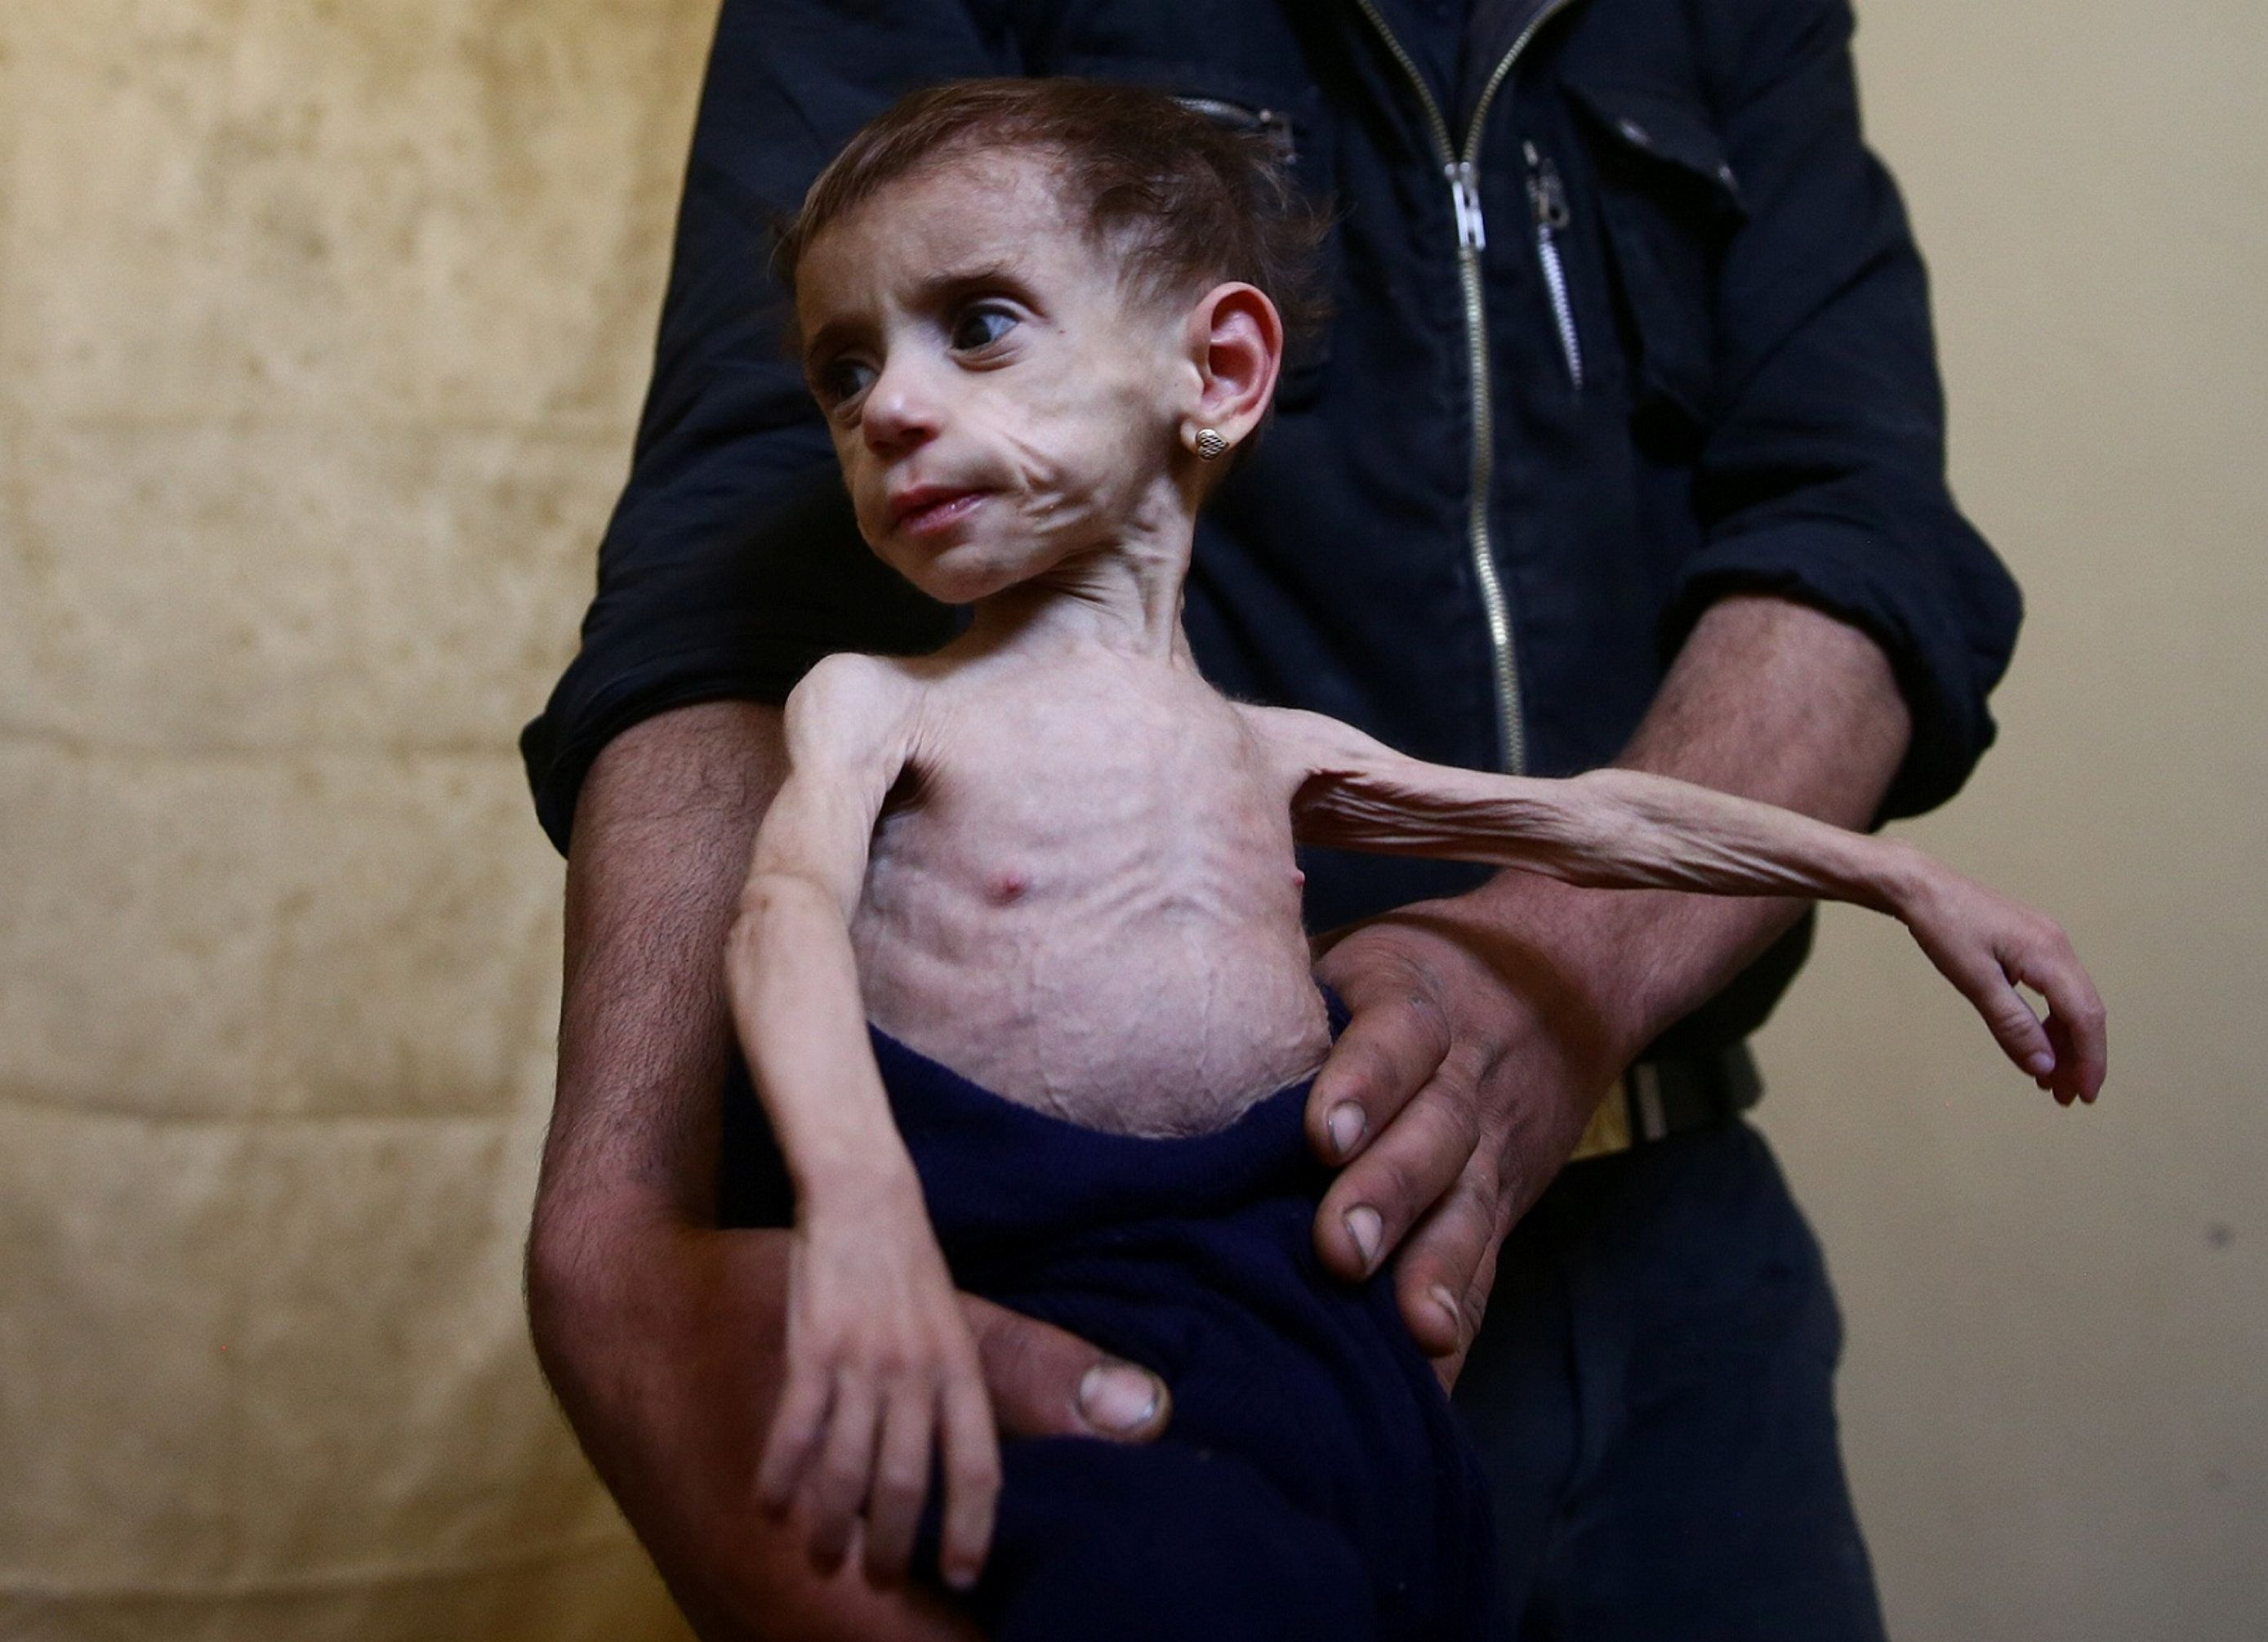 "Two-and-a-half year old Hala al-Nufi, who suffers from a metabolic disorder which is worsening due to the siege and food shortages in the eastern Ghouta, is held by her uncle in the eastern Damascus suburb of Ghouta, Syria, October 25, 2017. REUTERS/Bassam Khabieh  SEARCH ""KHABIEH MALNUTRITION"" FOR THIS STORY. SEARCH ""WIDER IMAGE"" FOR ALL STORIES."